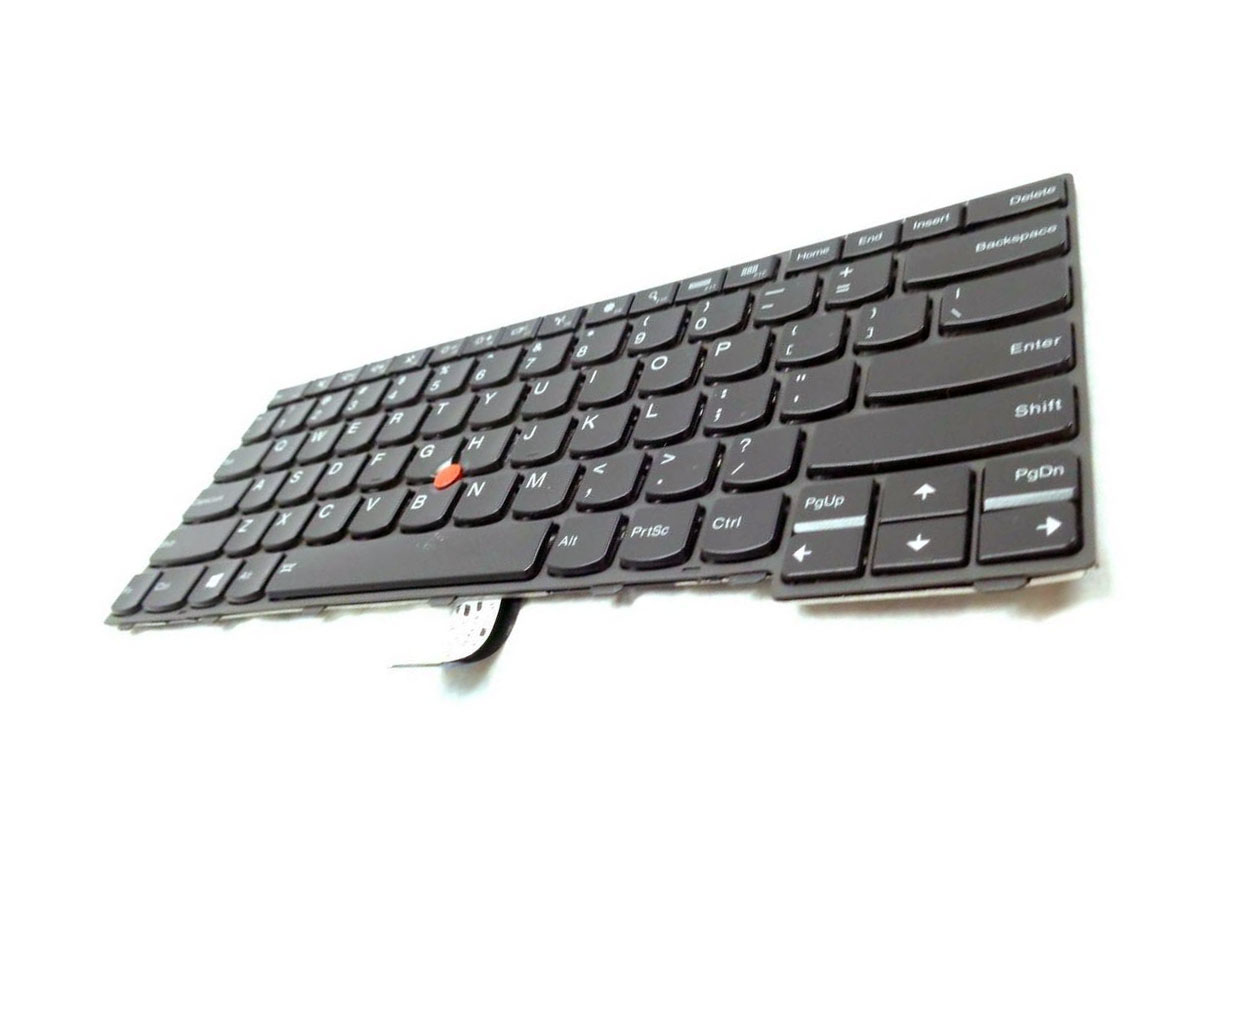 LENOVO 04X0121 KEYBOARD NOTEBOOK SPARE PART